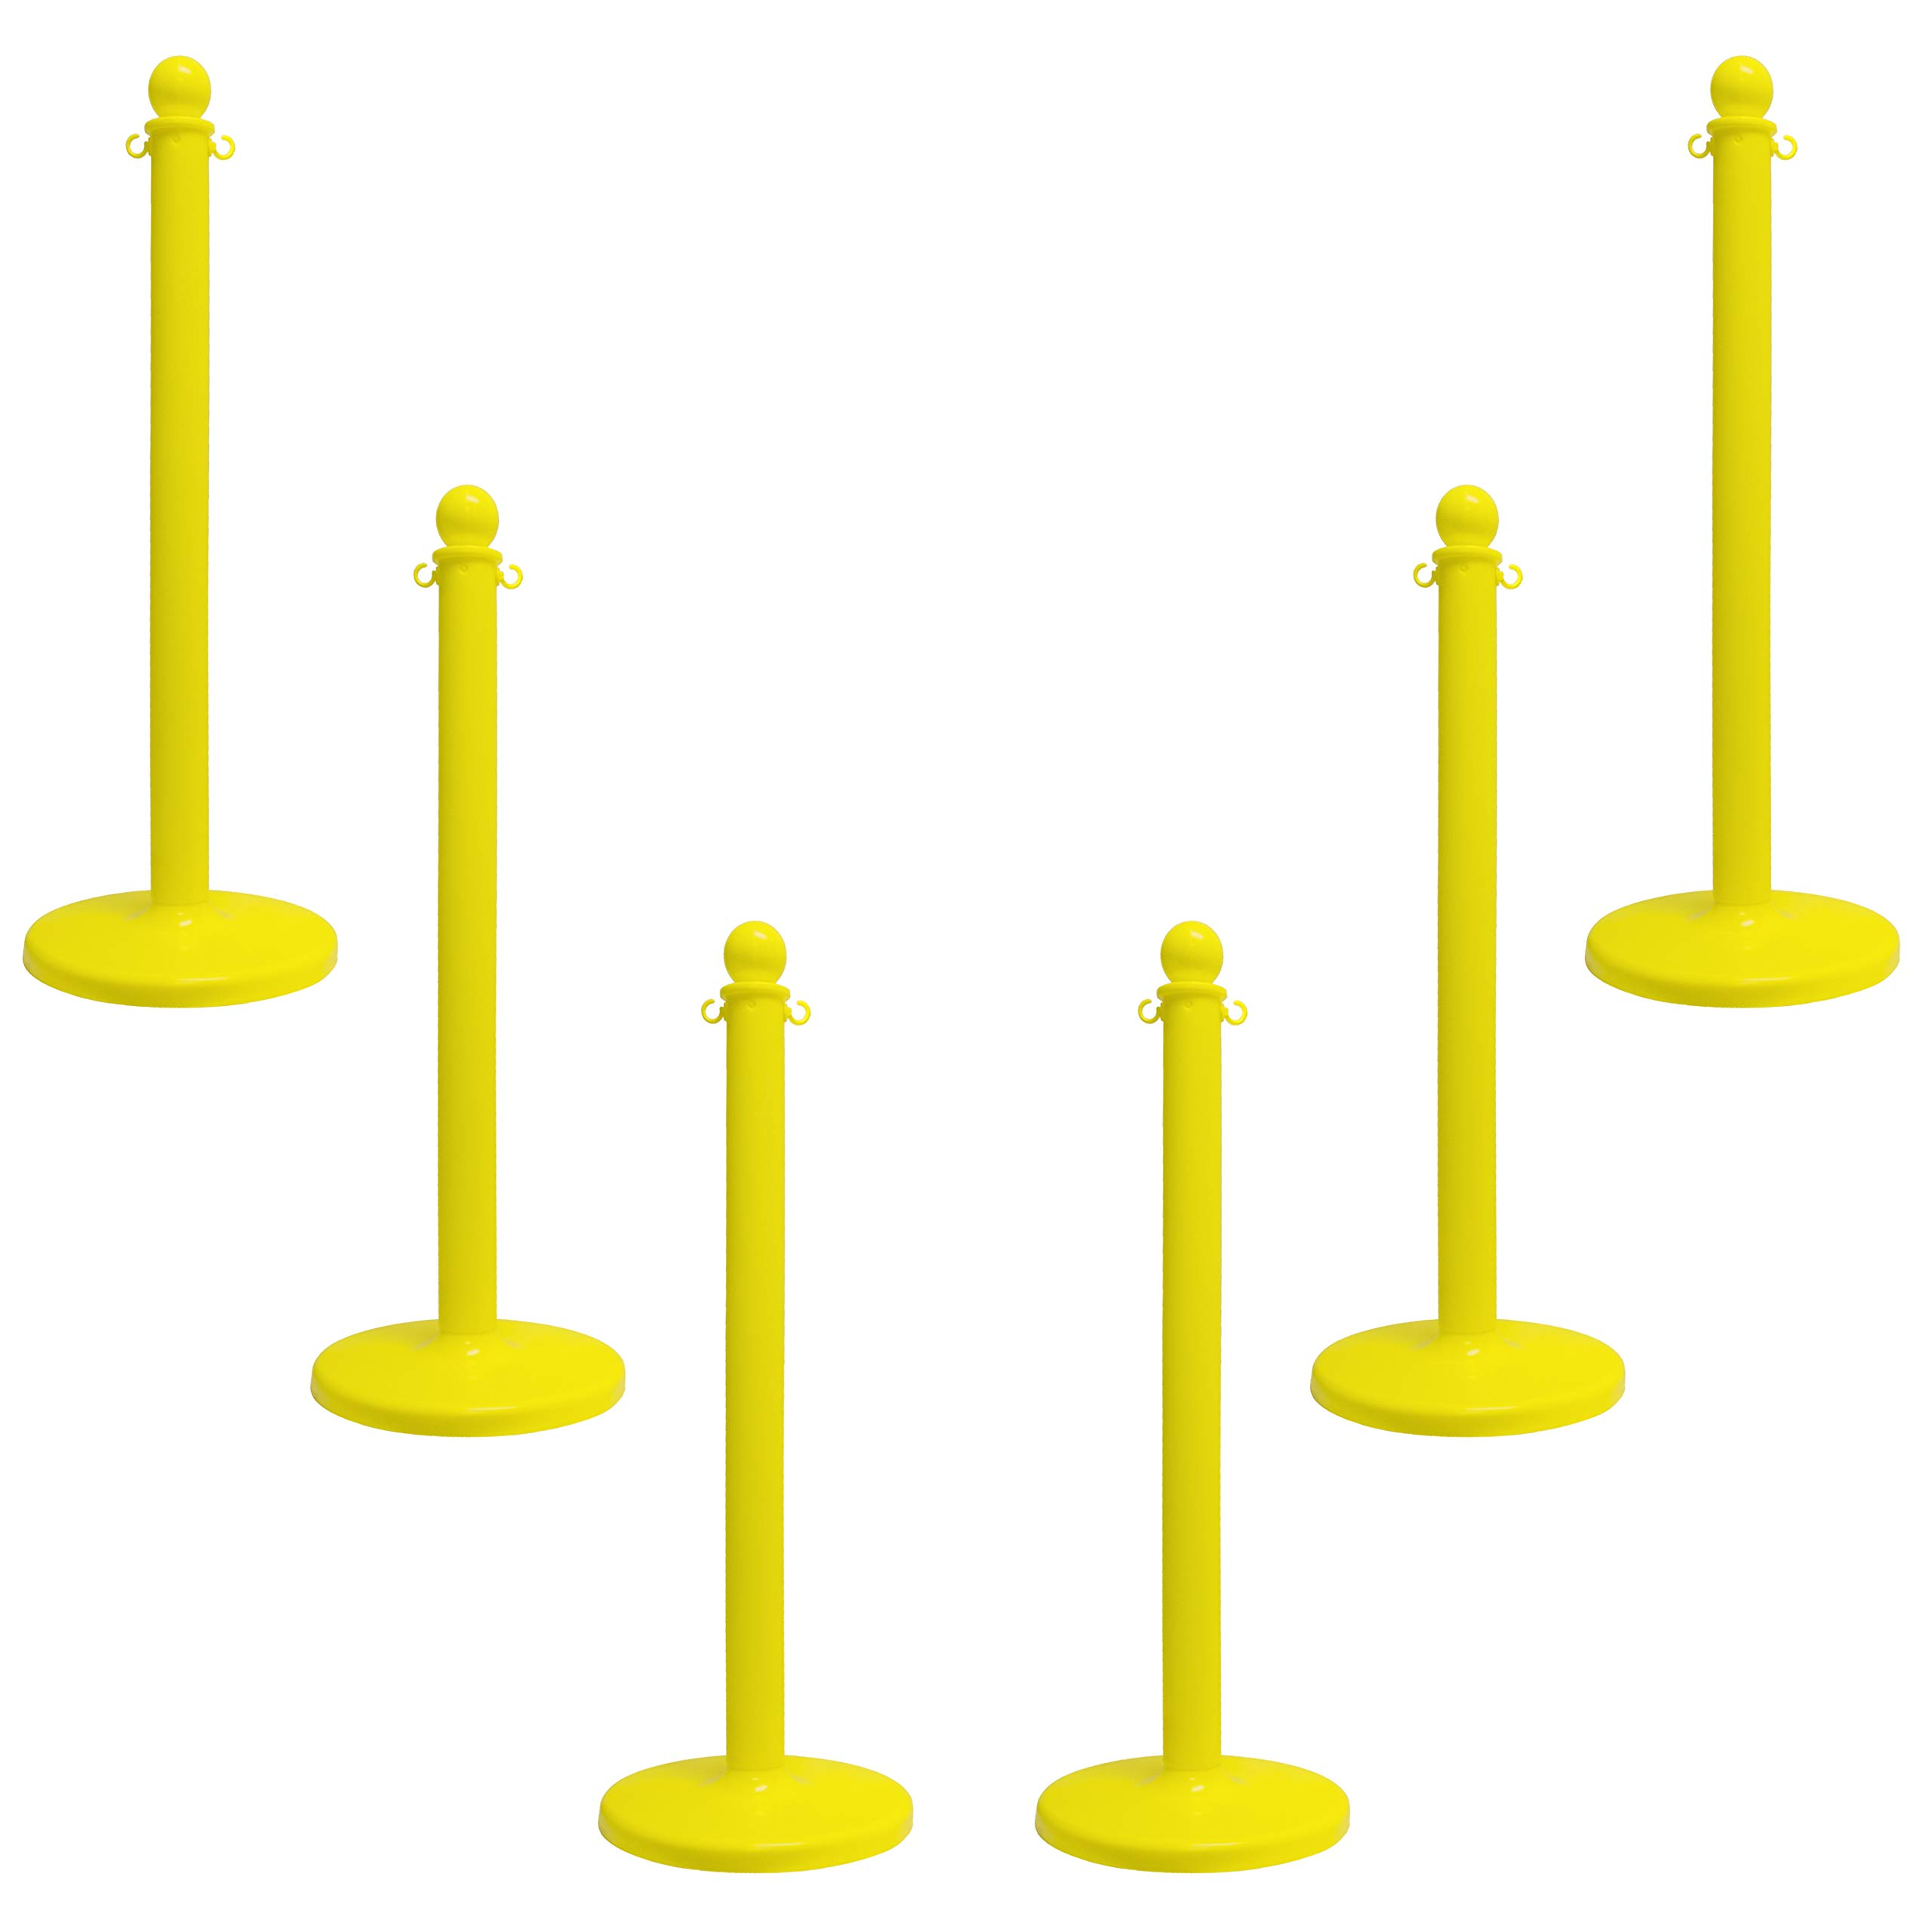 Mr. Chain 96402-6 Yellow Stanchion, 2.5'' link x 40'' Overall Height, Pack of 6